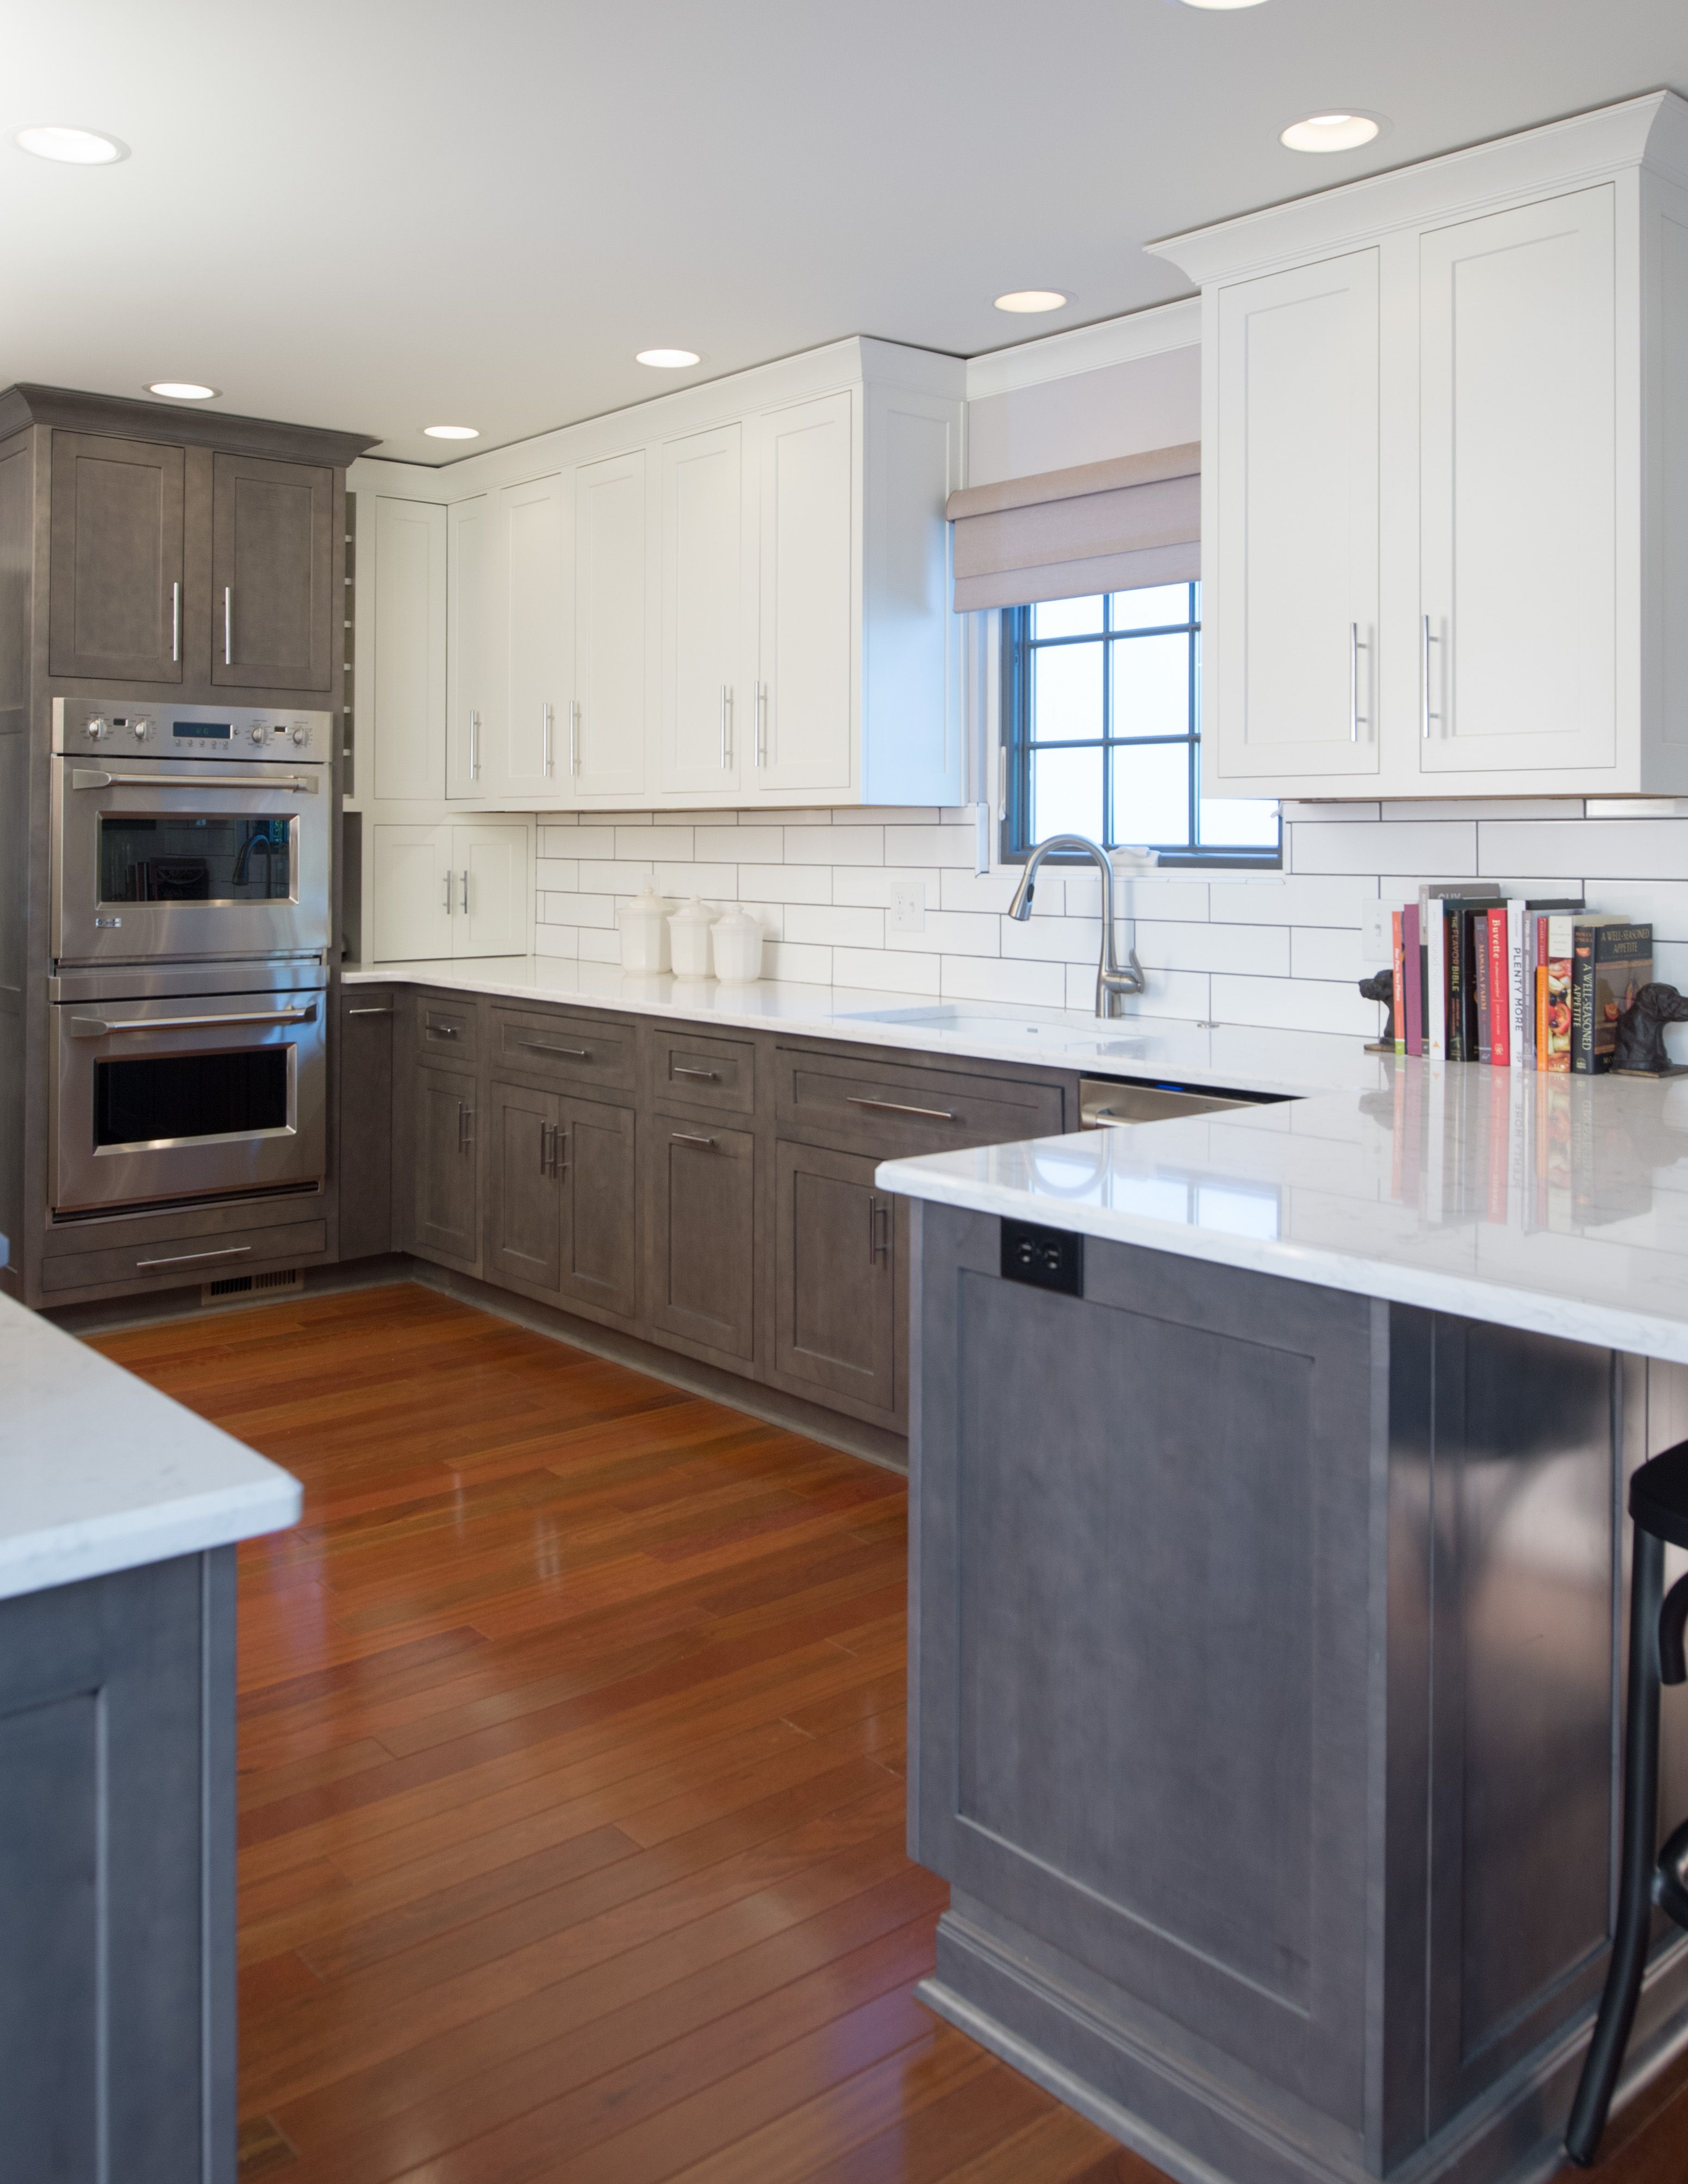 Lower Grey Stained And White Painted Upper Cabinets With